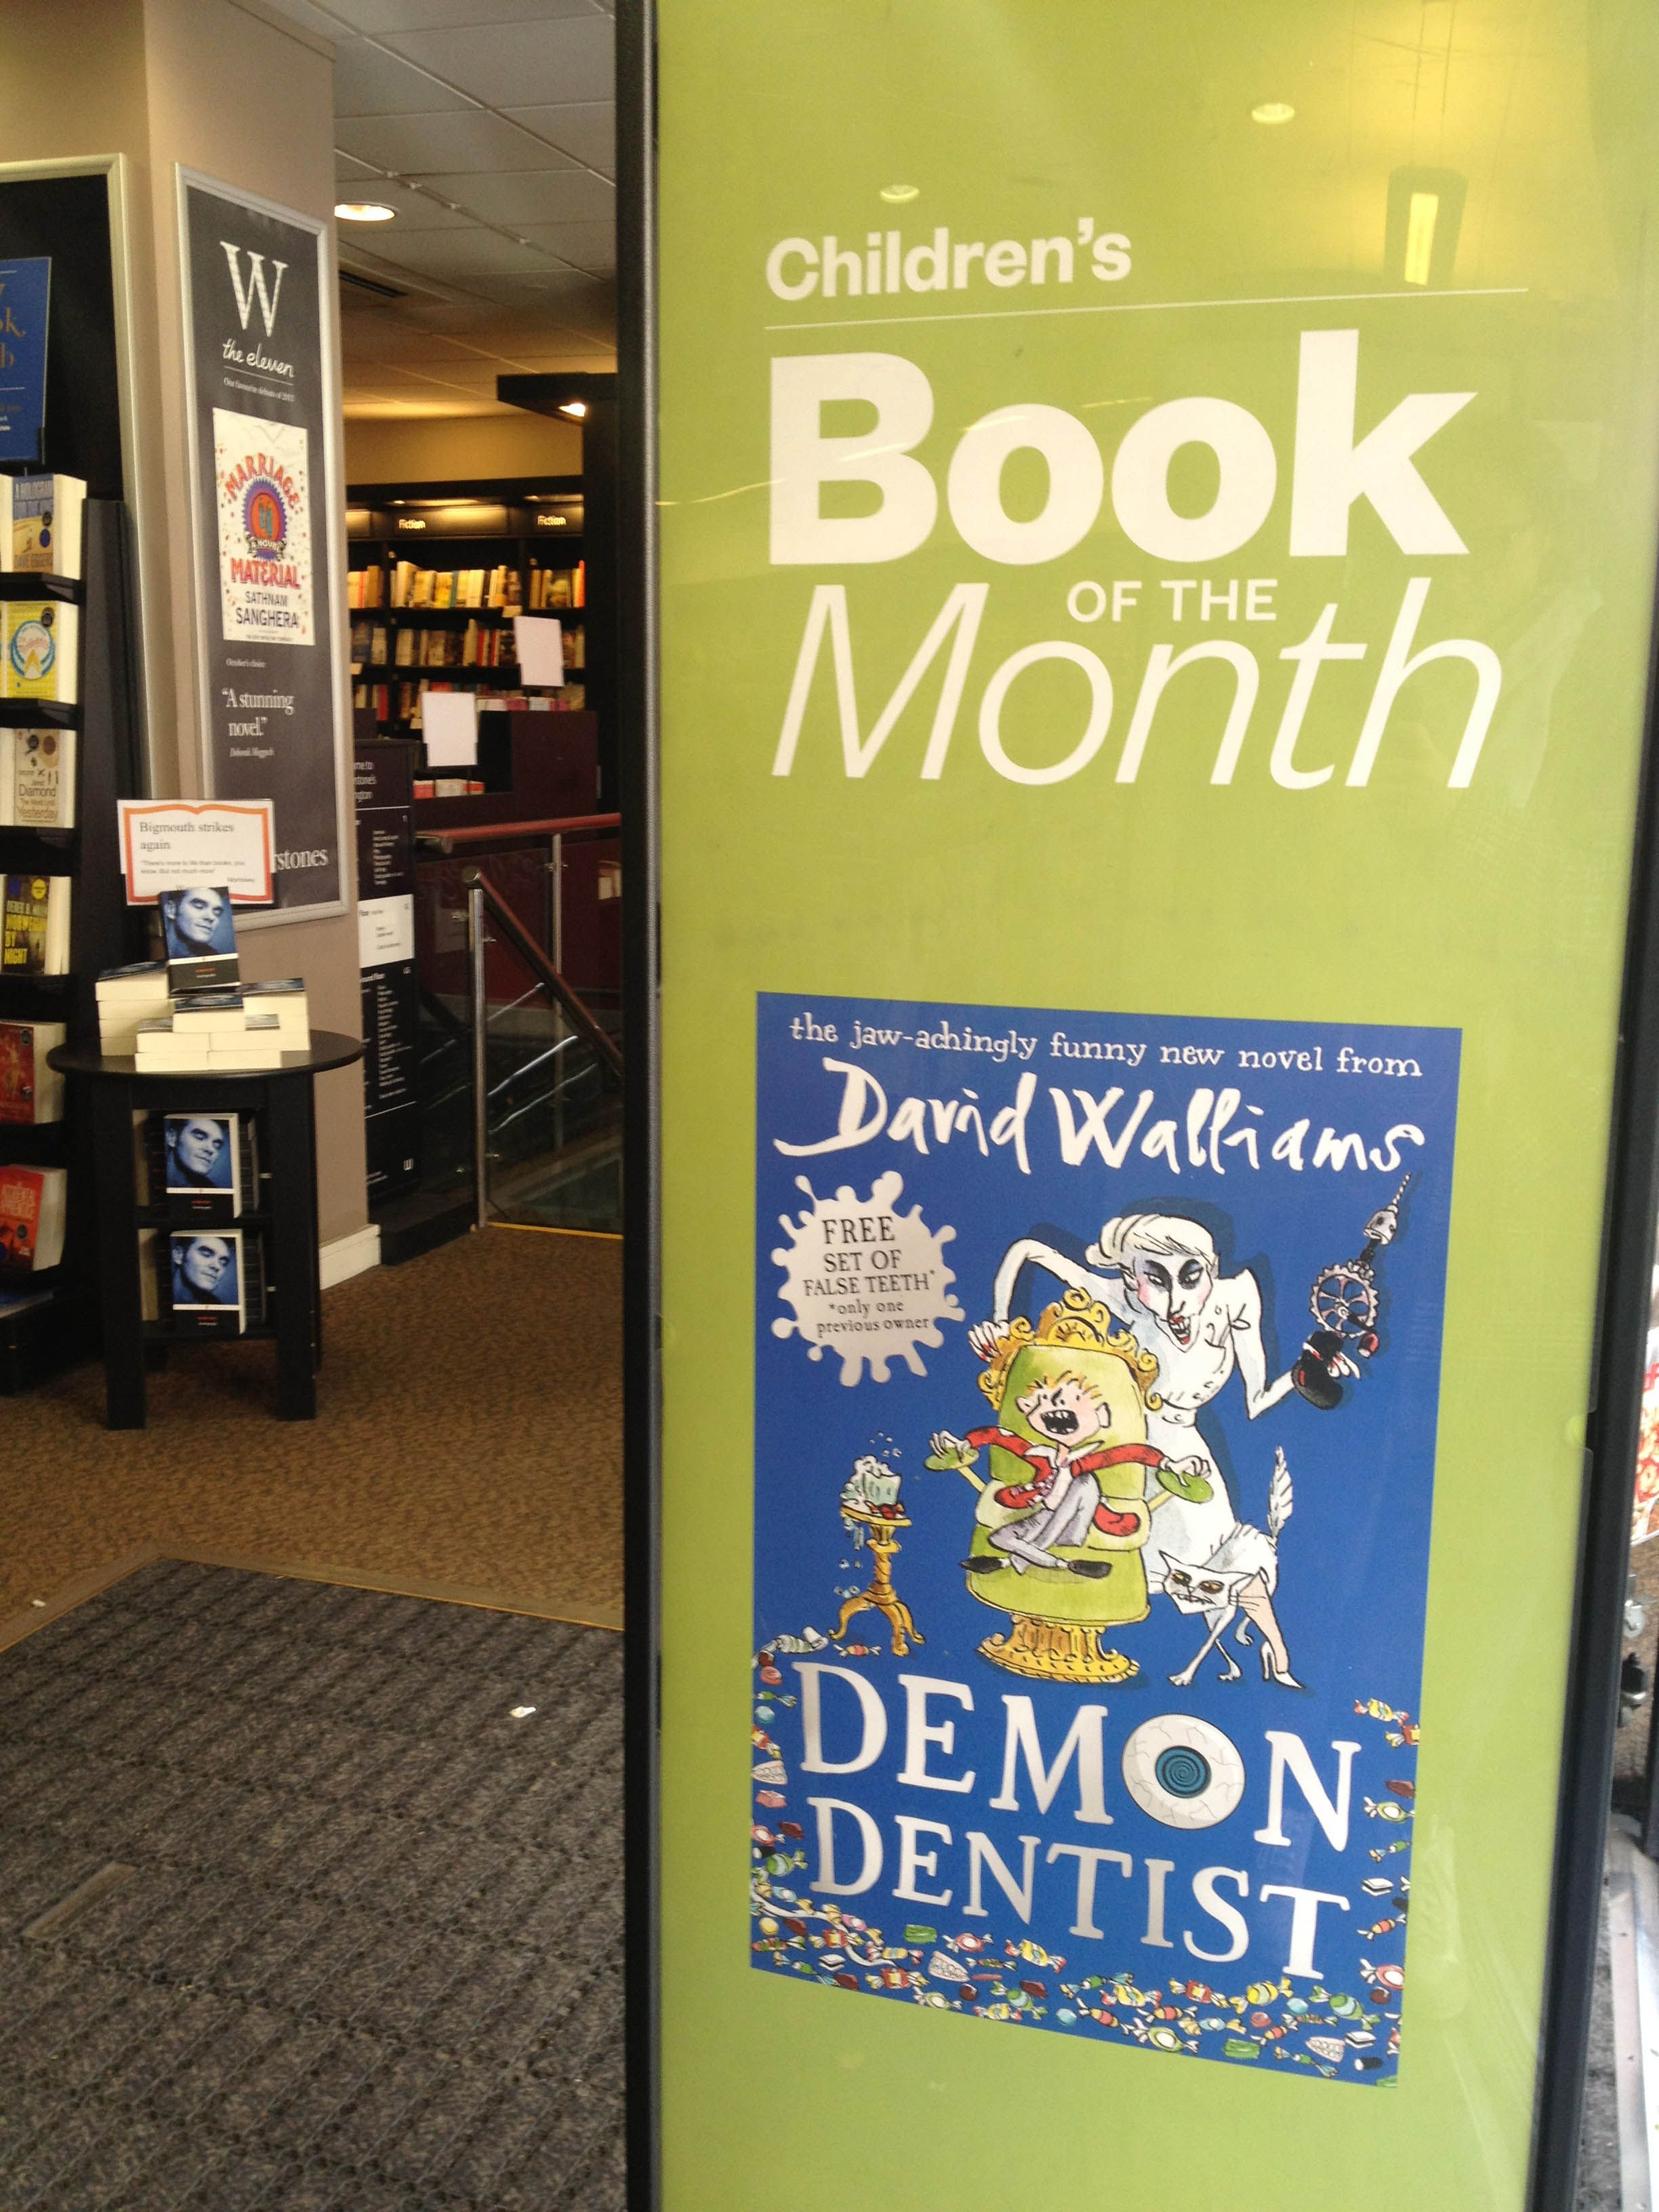 Reviews children s book review demon dentist david walliams - Demon Dentist By David Walliams Children S Book Of The Month At Waterstones